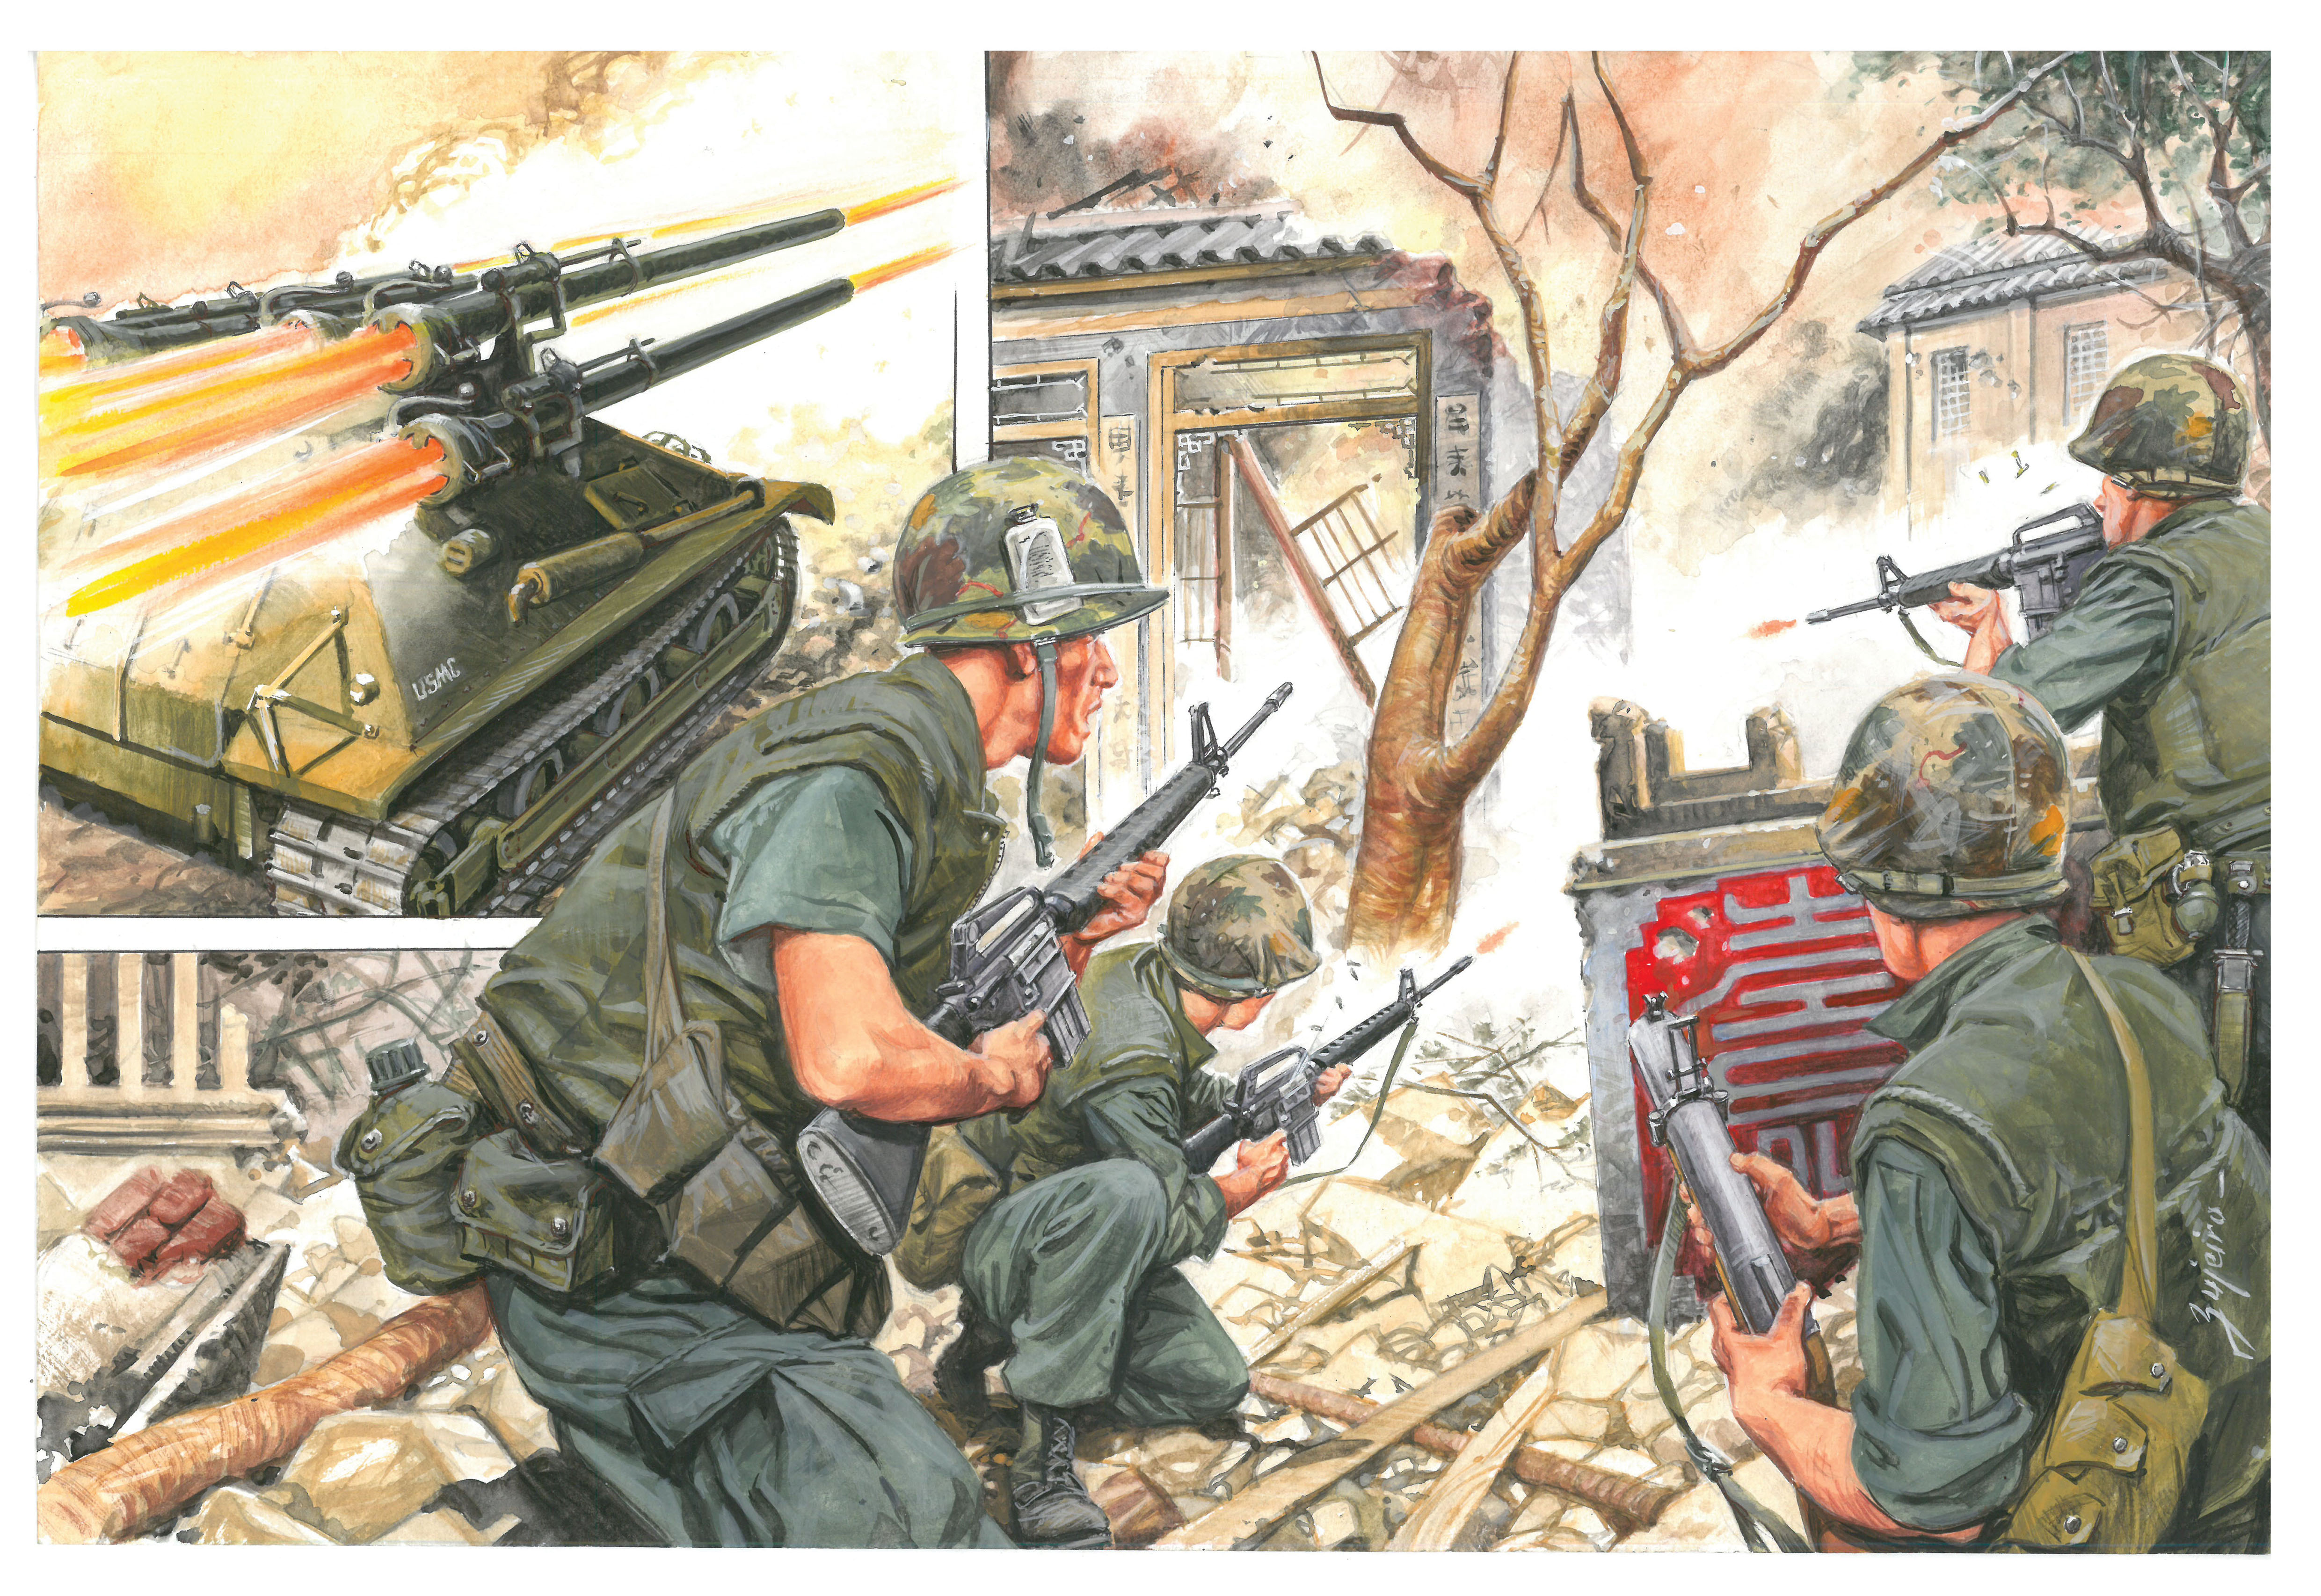 The Battle of Hue 1968